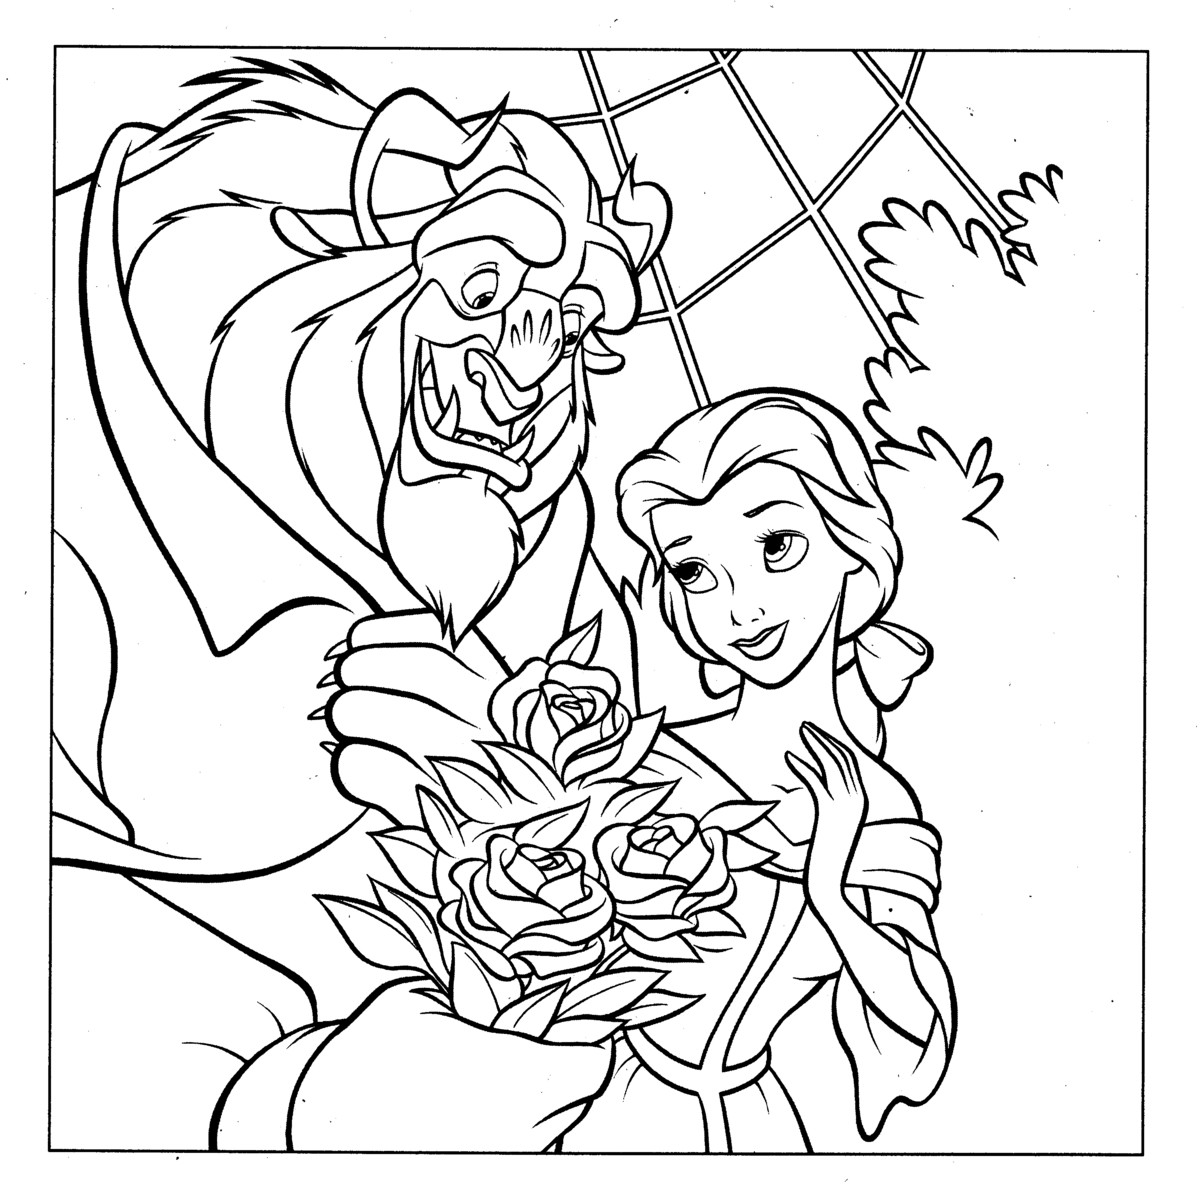 Beauty and the Beast Belle Coloring Pages Download | Kids ...Beauty And The Beast Coloring Page Beast